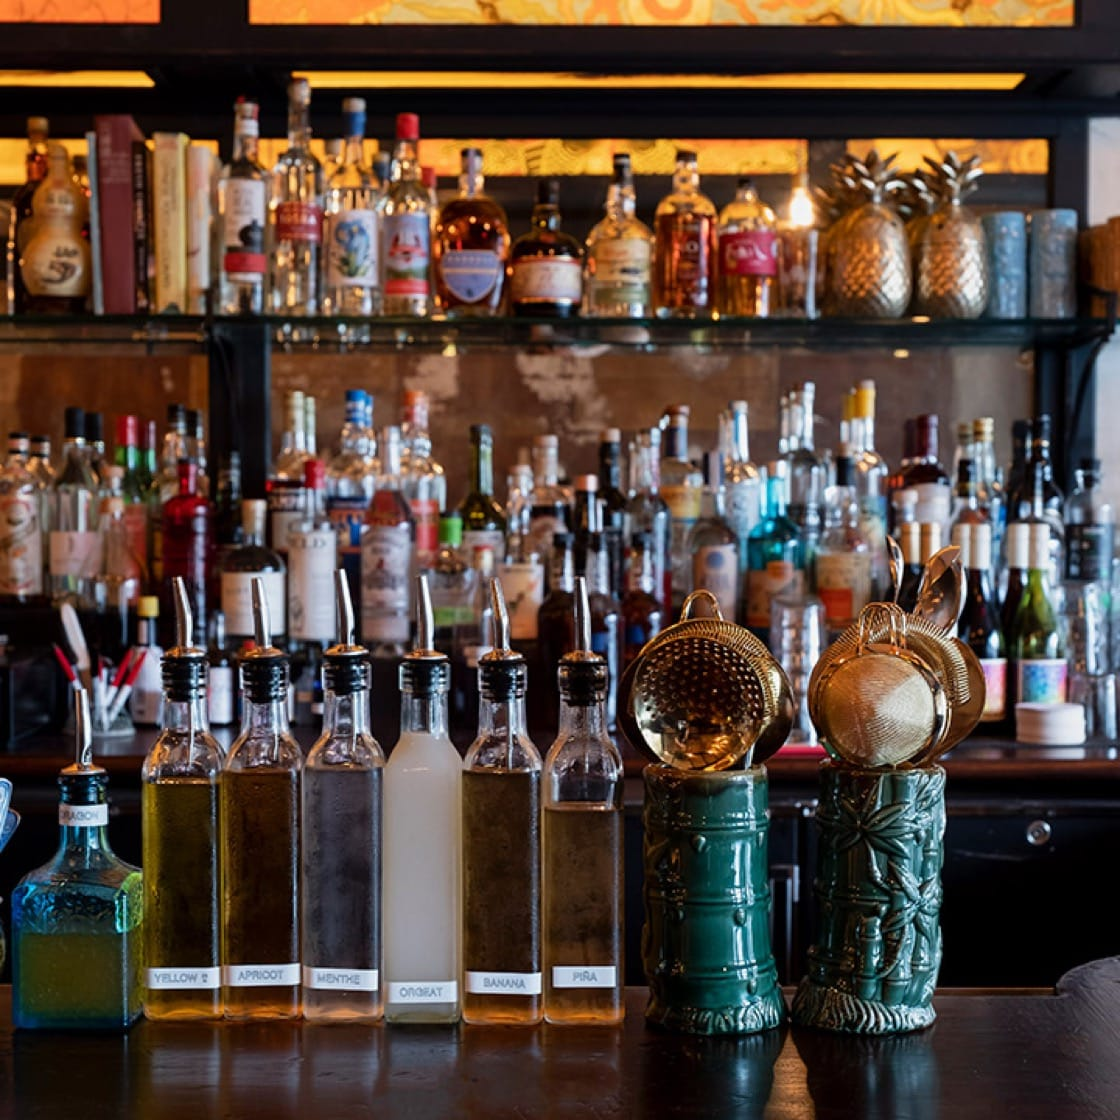 The bar at Kings County Imperial LES. (Photo by Alison Engstrom.)